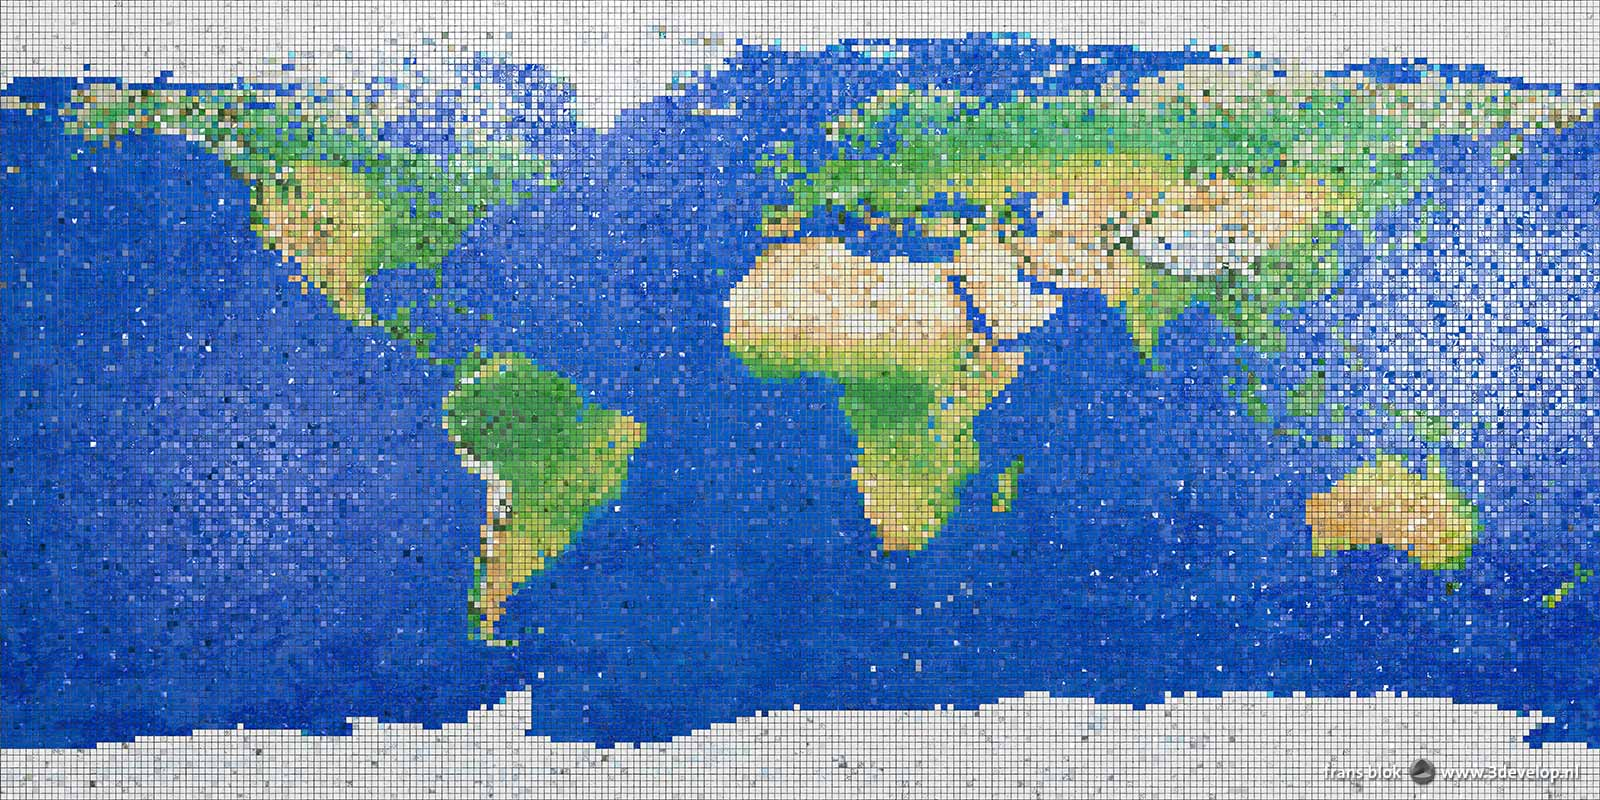 World map with 31.250 little mosaic tiles, computer-generated but indistinguishable from reality through application of shine and relief